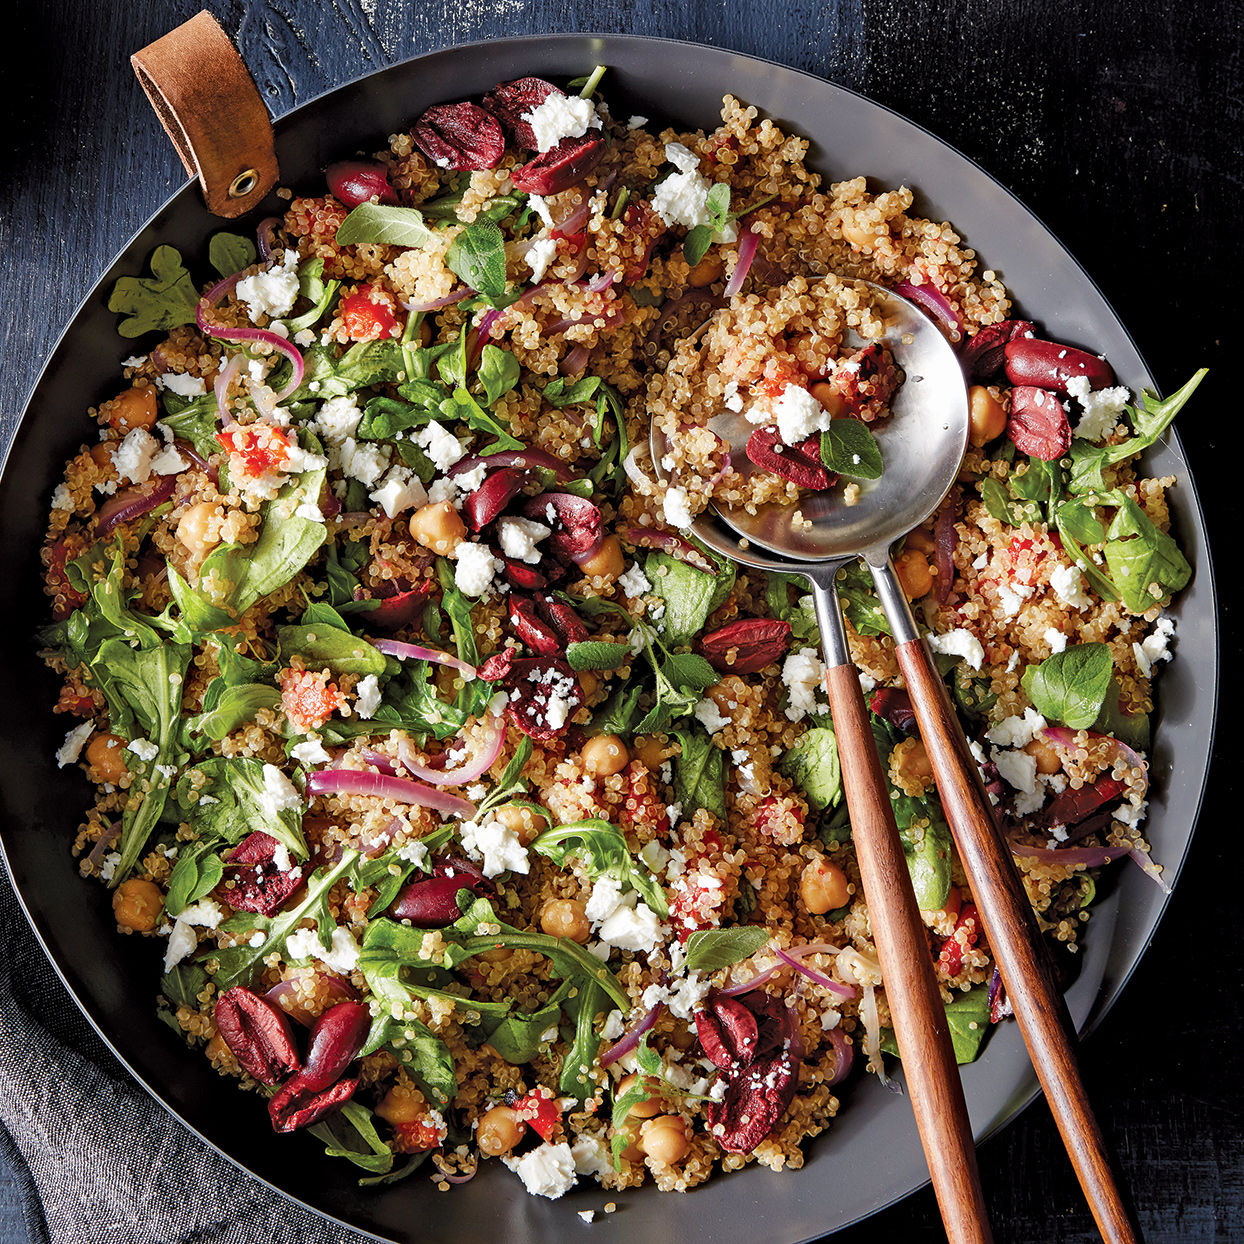 Chock-full of quinoa, chickpeas and vegetables, this salad is a meal in itself. The roasted red peppers, lemon, olives and feta add familiar Mediterranean flavor.